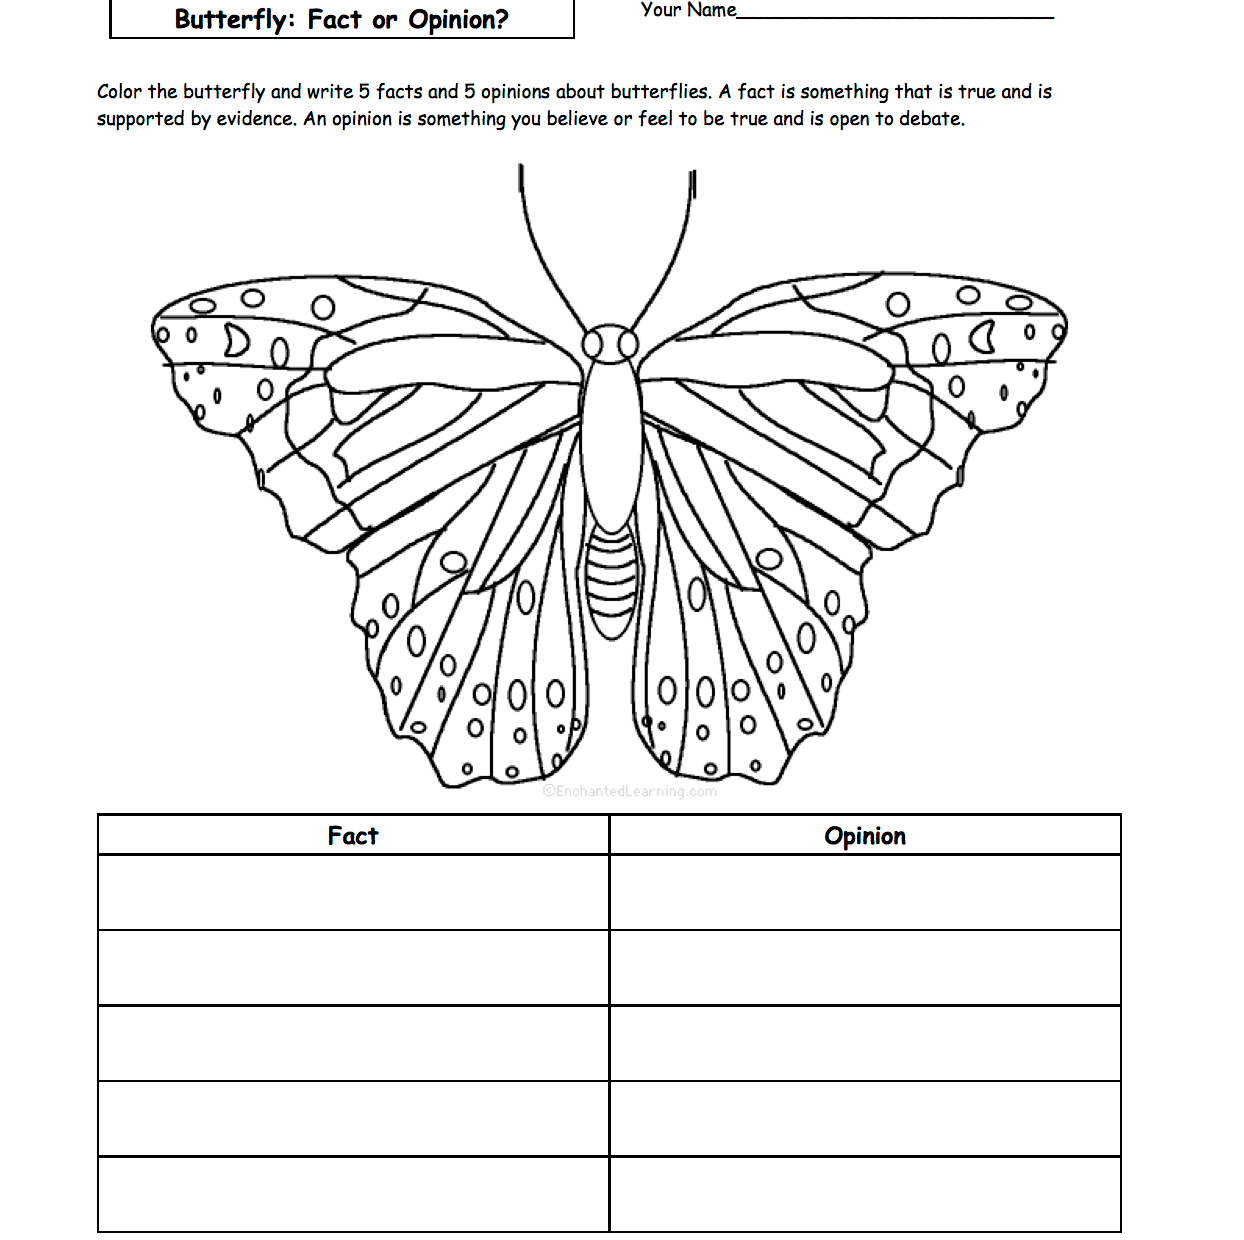 butterfly coloring pages free get this difficult butterfly coloring pages for adults coloring butterfly pages free